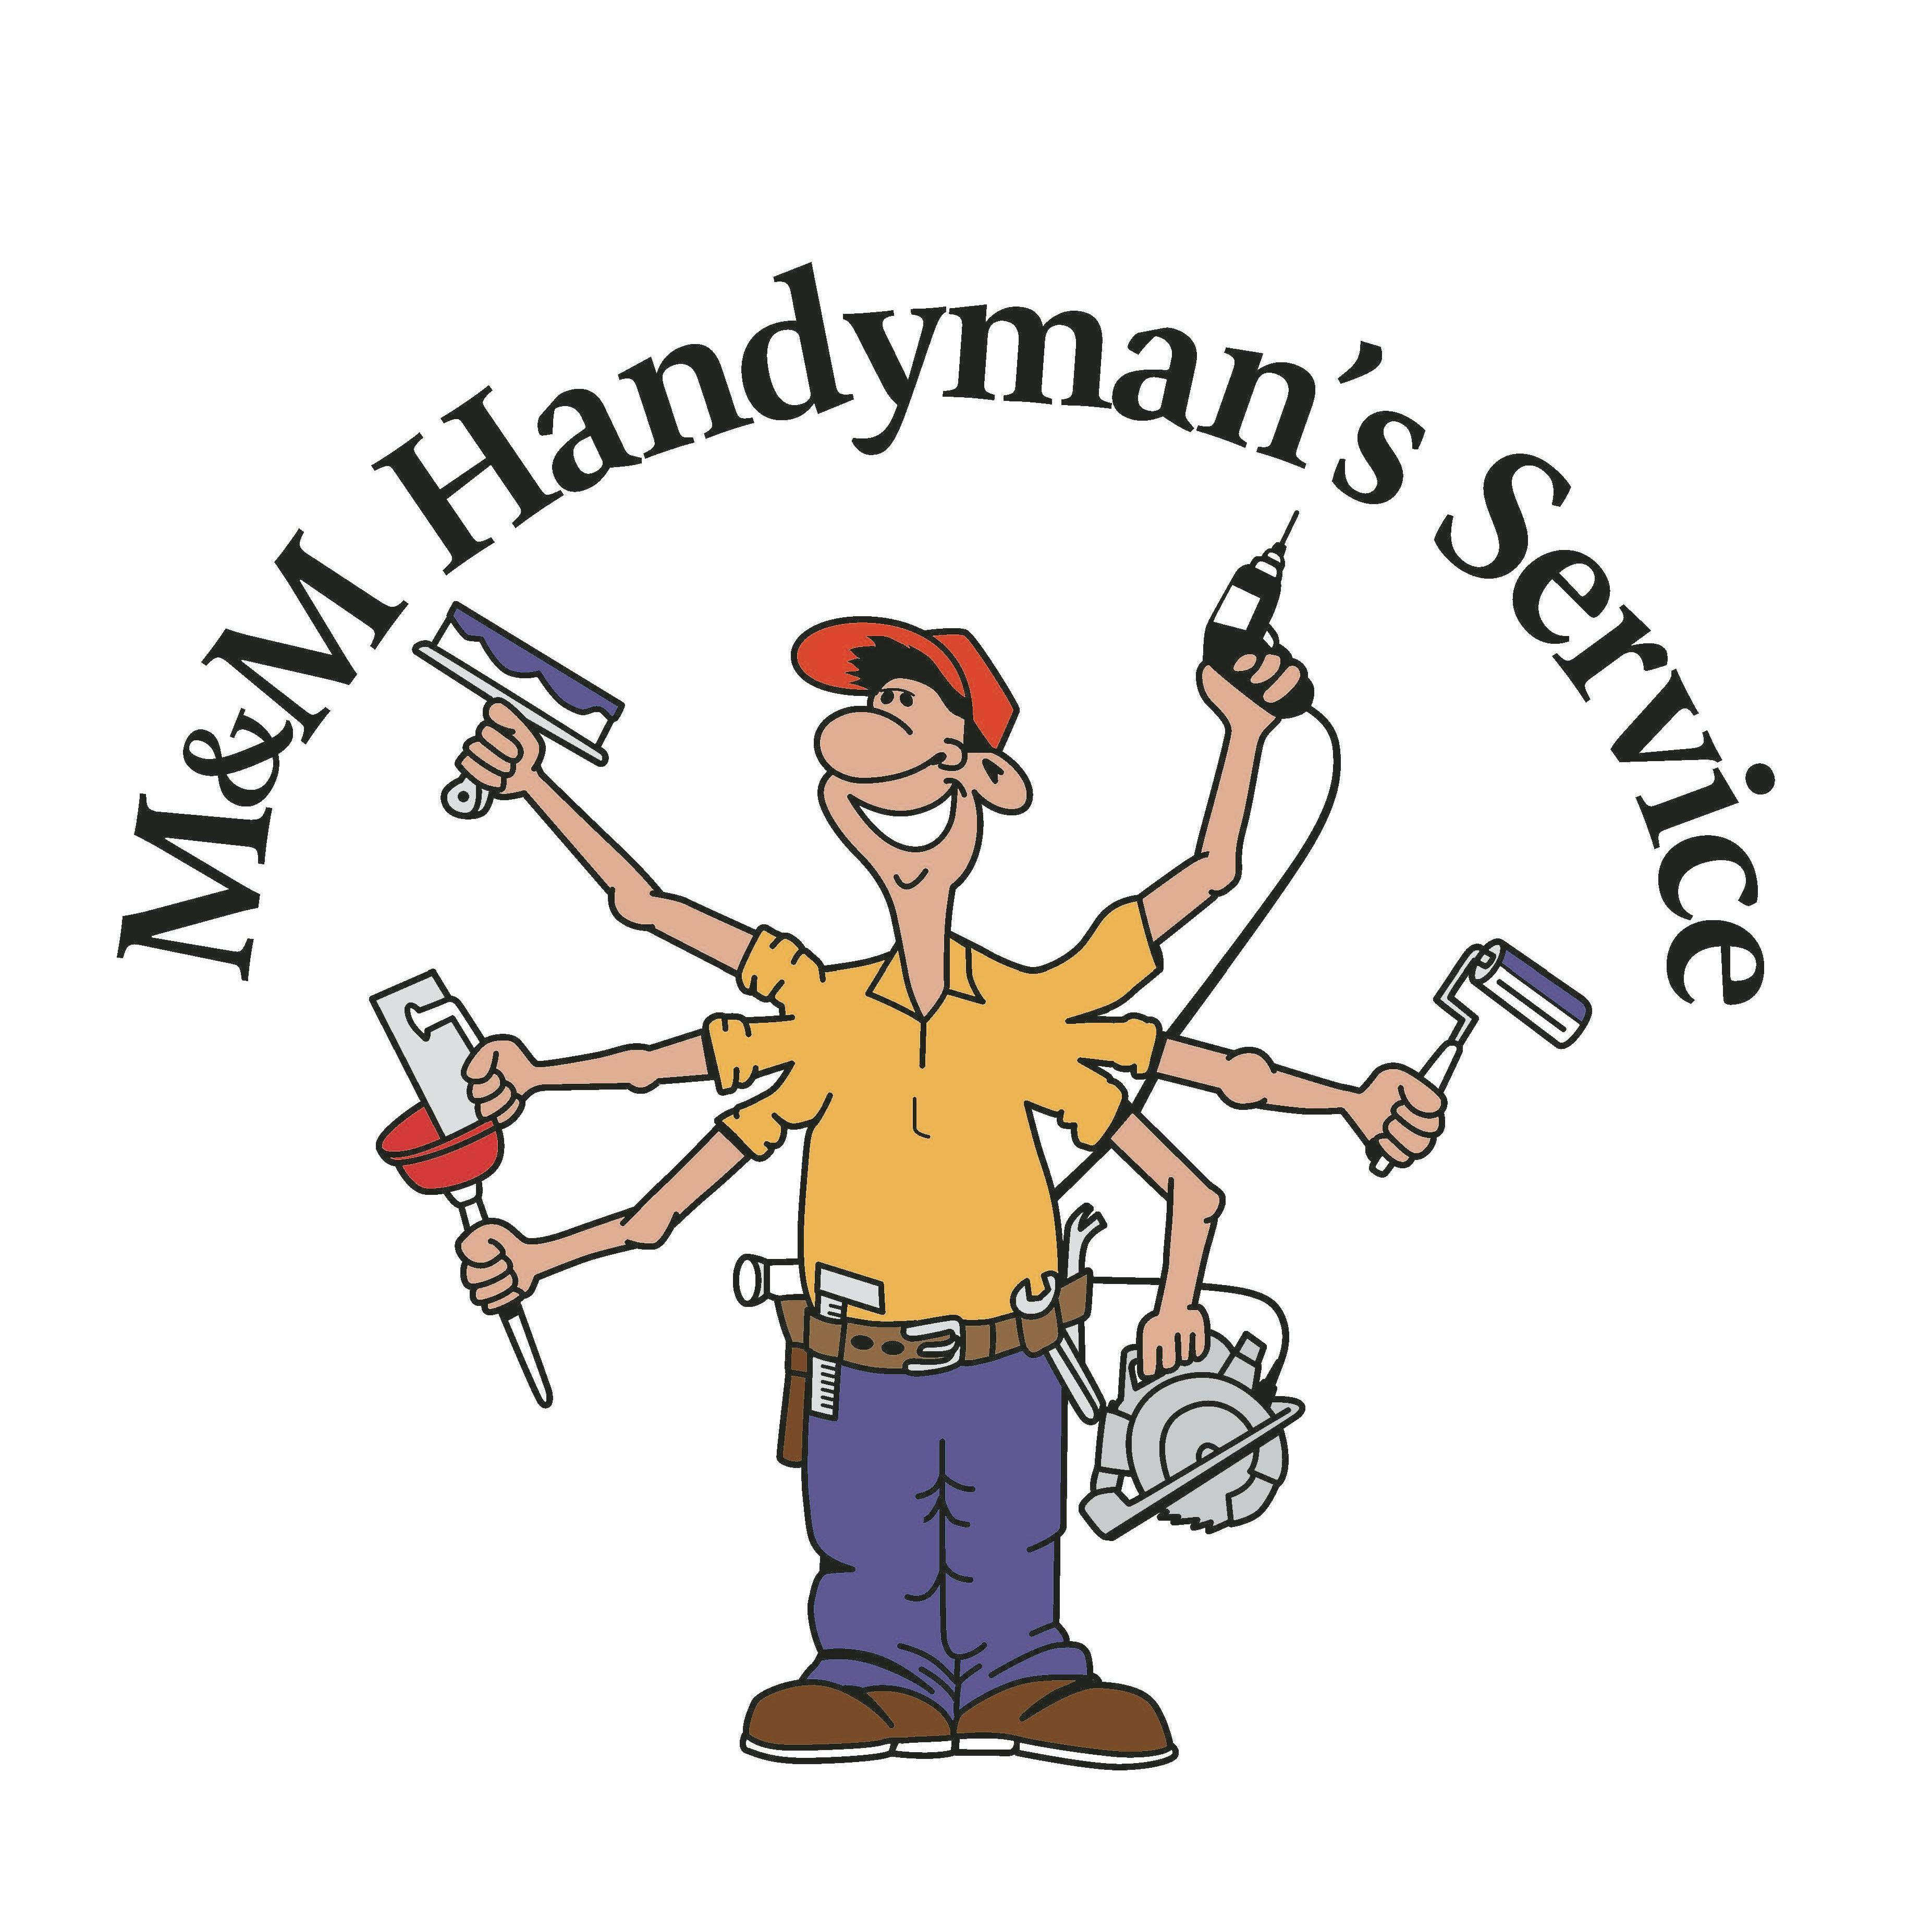 at let make experts solutions easy departments it construction the remodeling for new bathroom and handyman perfect lincoln handy ne you man banner creating